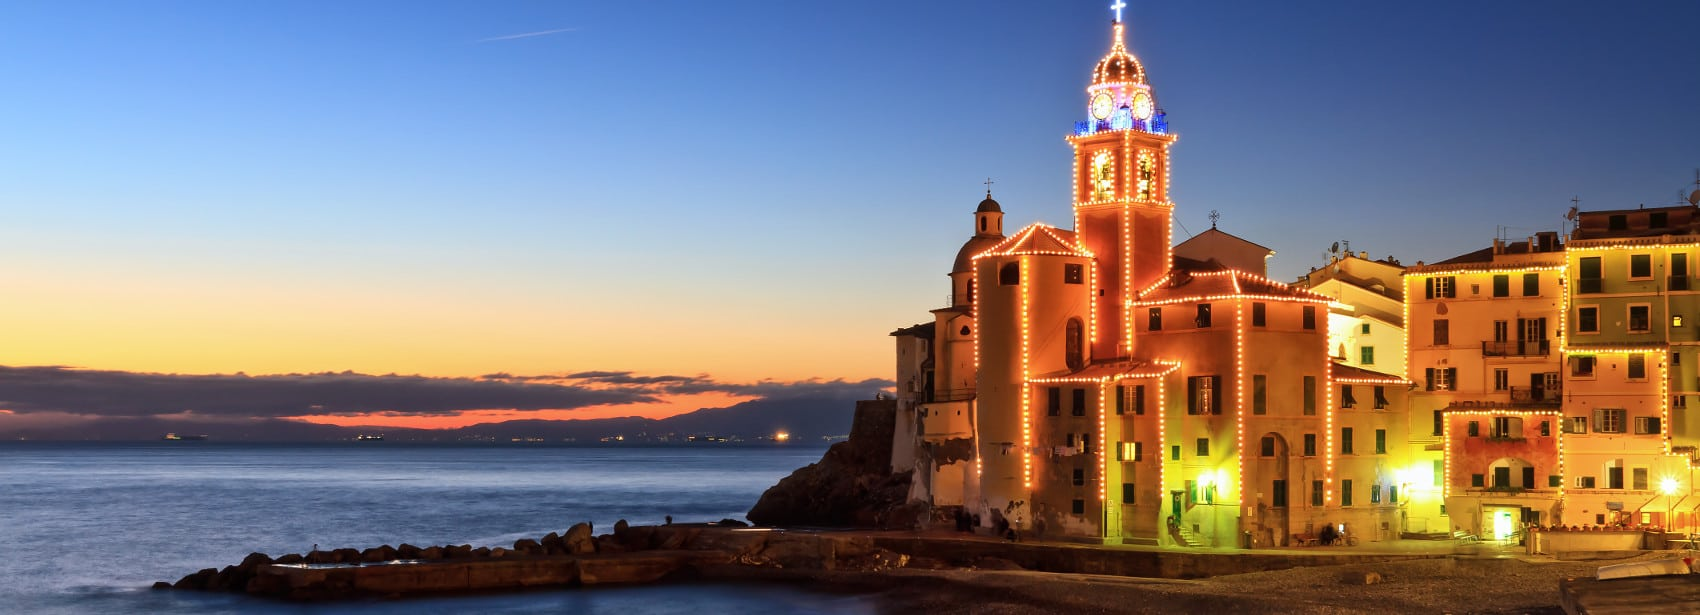 Tour Liguria by Volver Viaggi